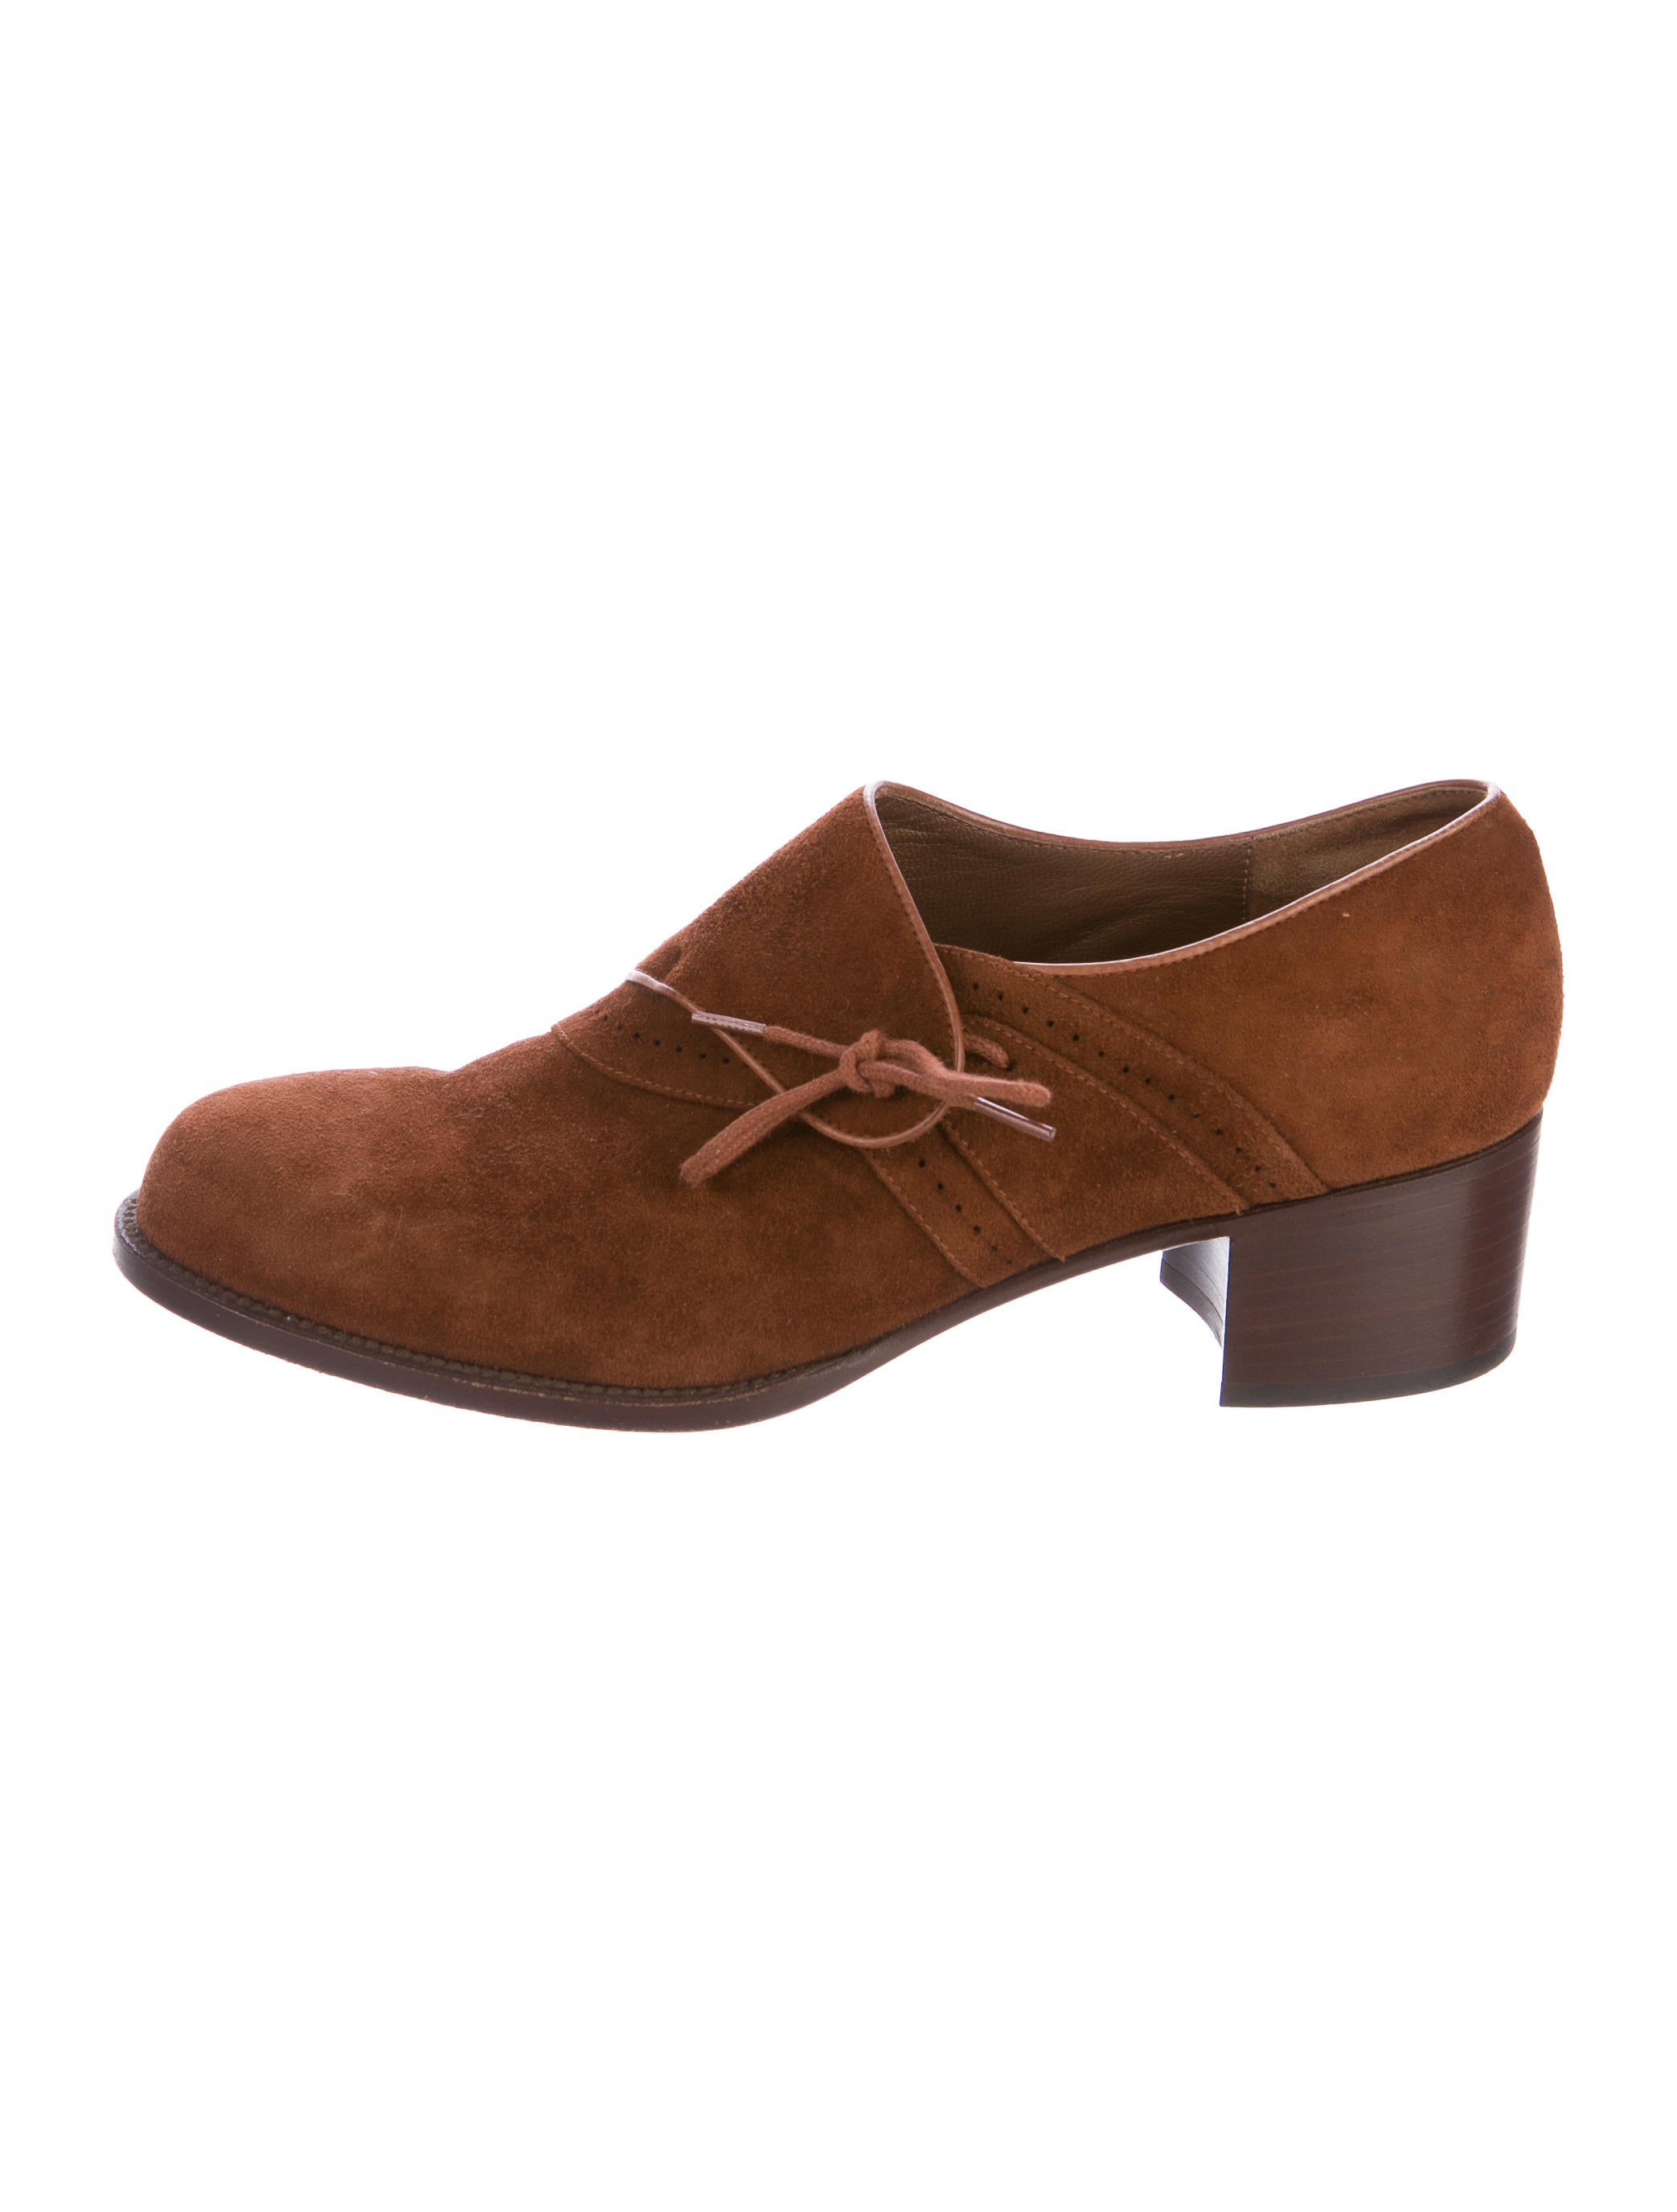 outlet 2014 unisex Henry Beguelin Leather Round-Toe Oxfords cheap sale marketable finishline for sale low price for sale free shipping latest vNMAc